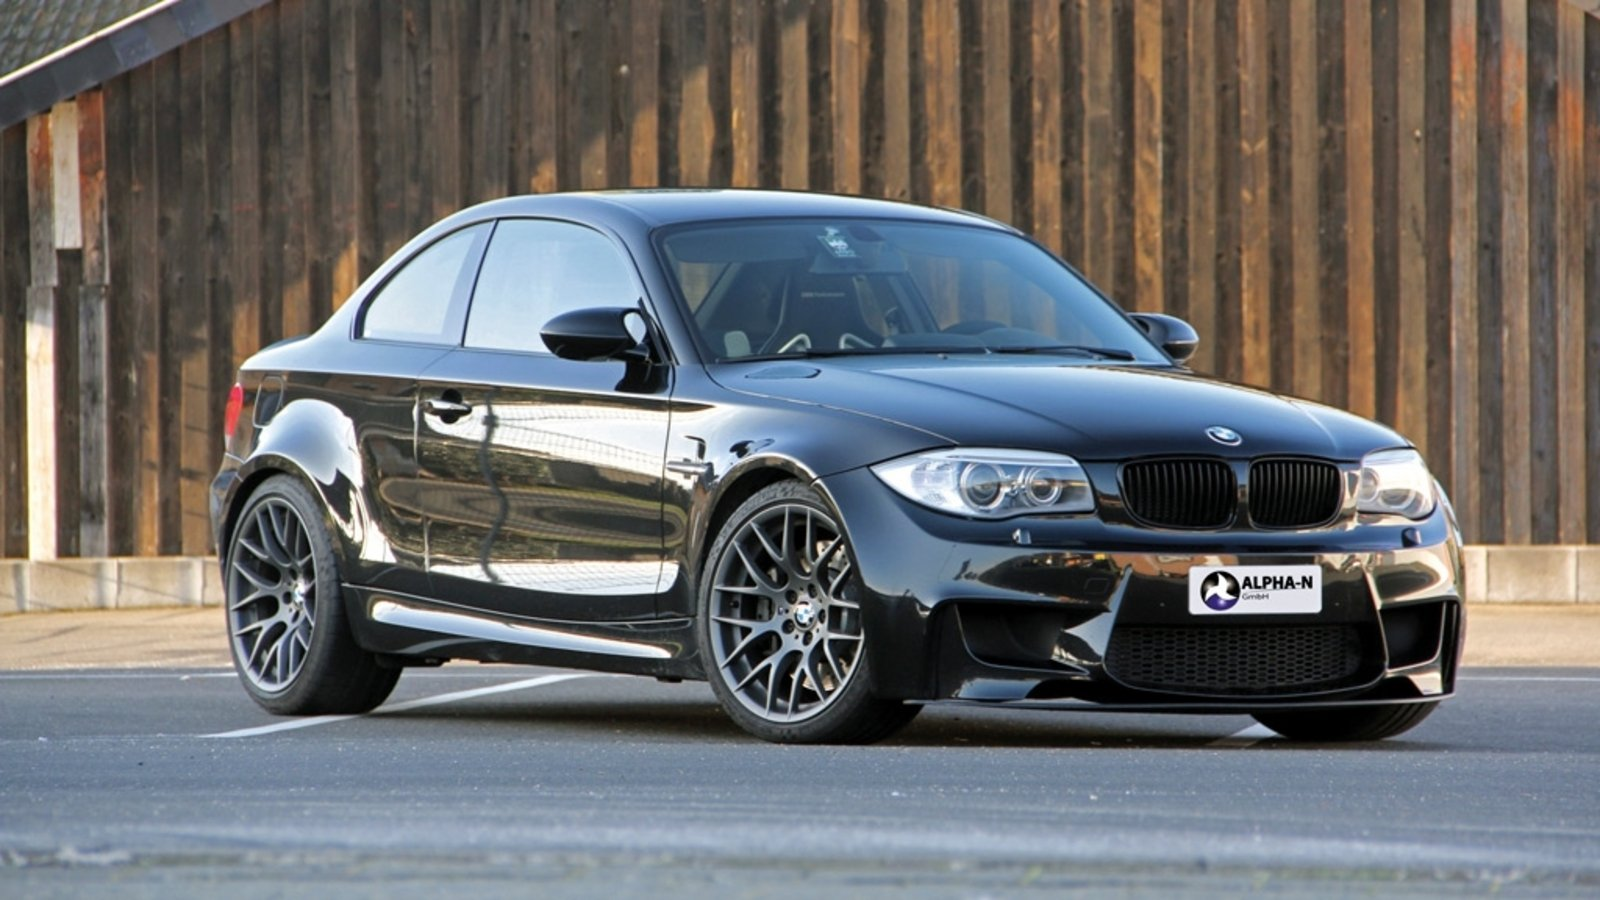 2012 bmw 1 series m coupe by alpha n performance review. Black Bedroom Furniture Sets. Home Design Ideas